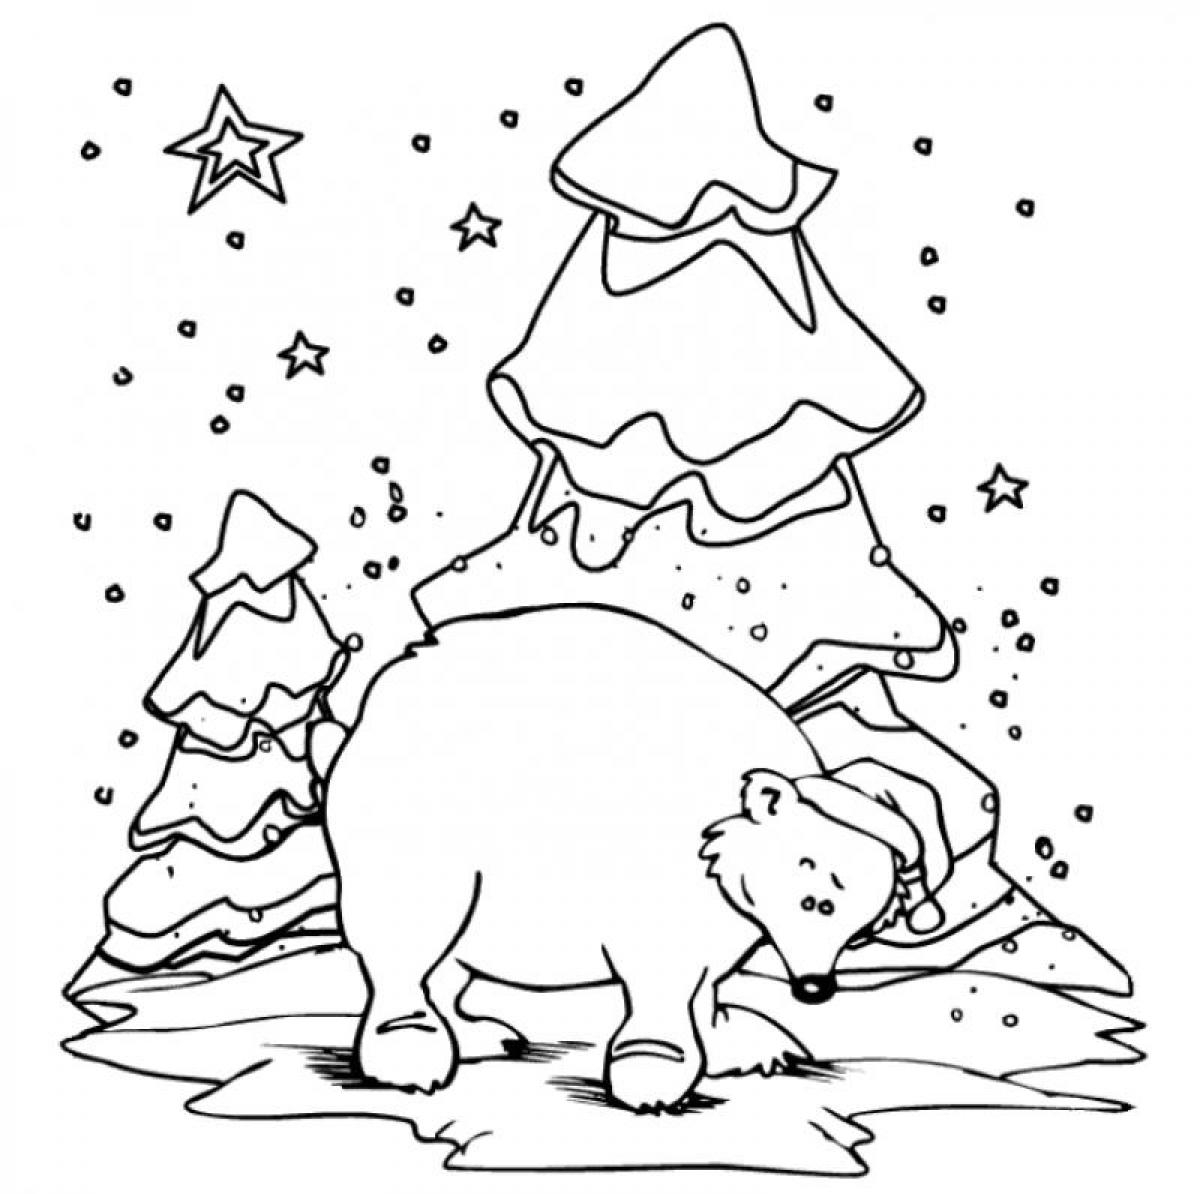 Bear Coloring Pages To Print At Getcolorings